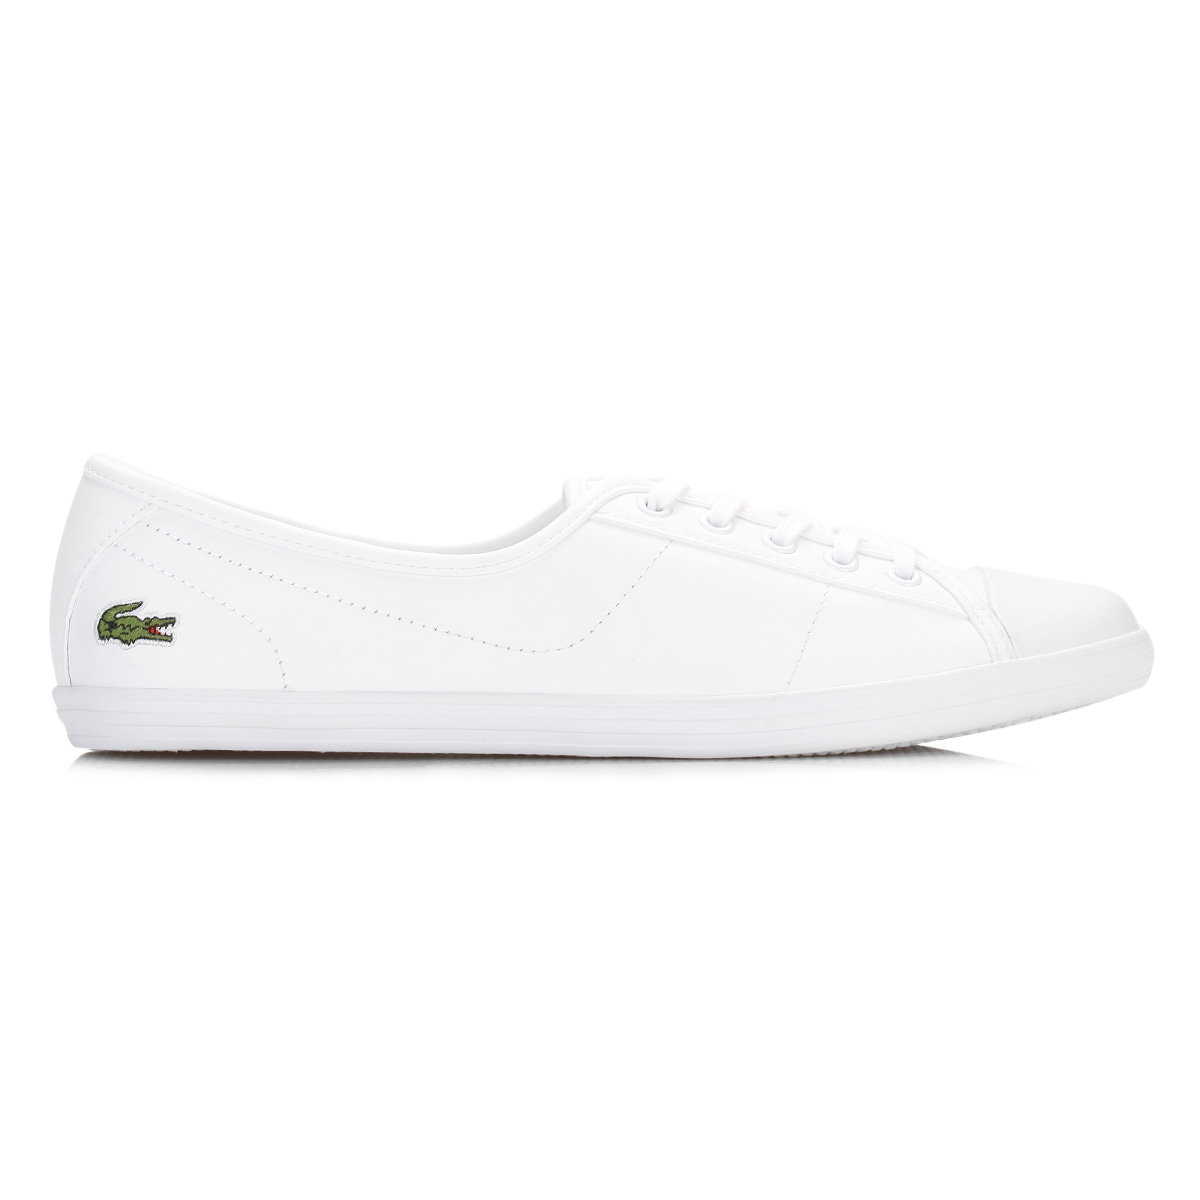 5bf5a05ffc3e12 Lacoste Womens Trainers White Ziane BL 1 SPW Leather Lace Up Shoes ...